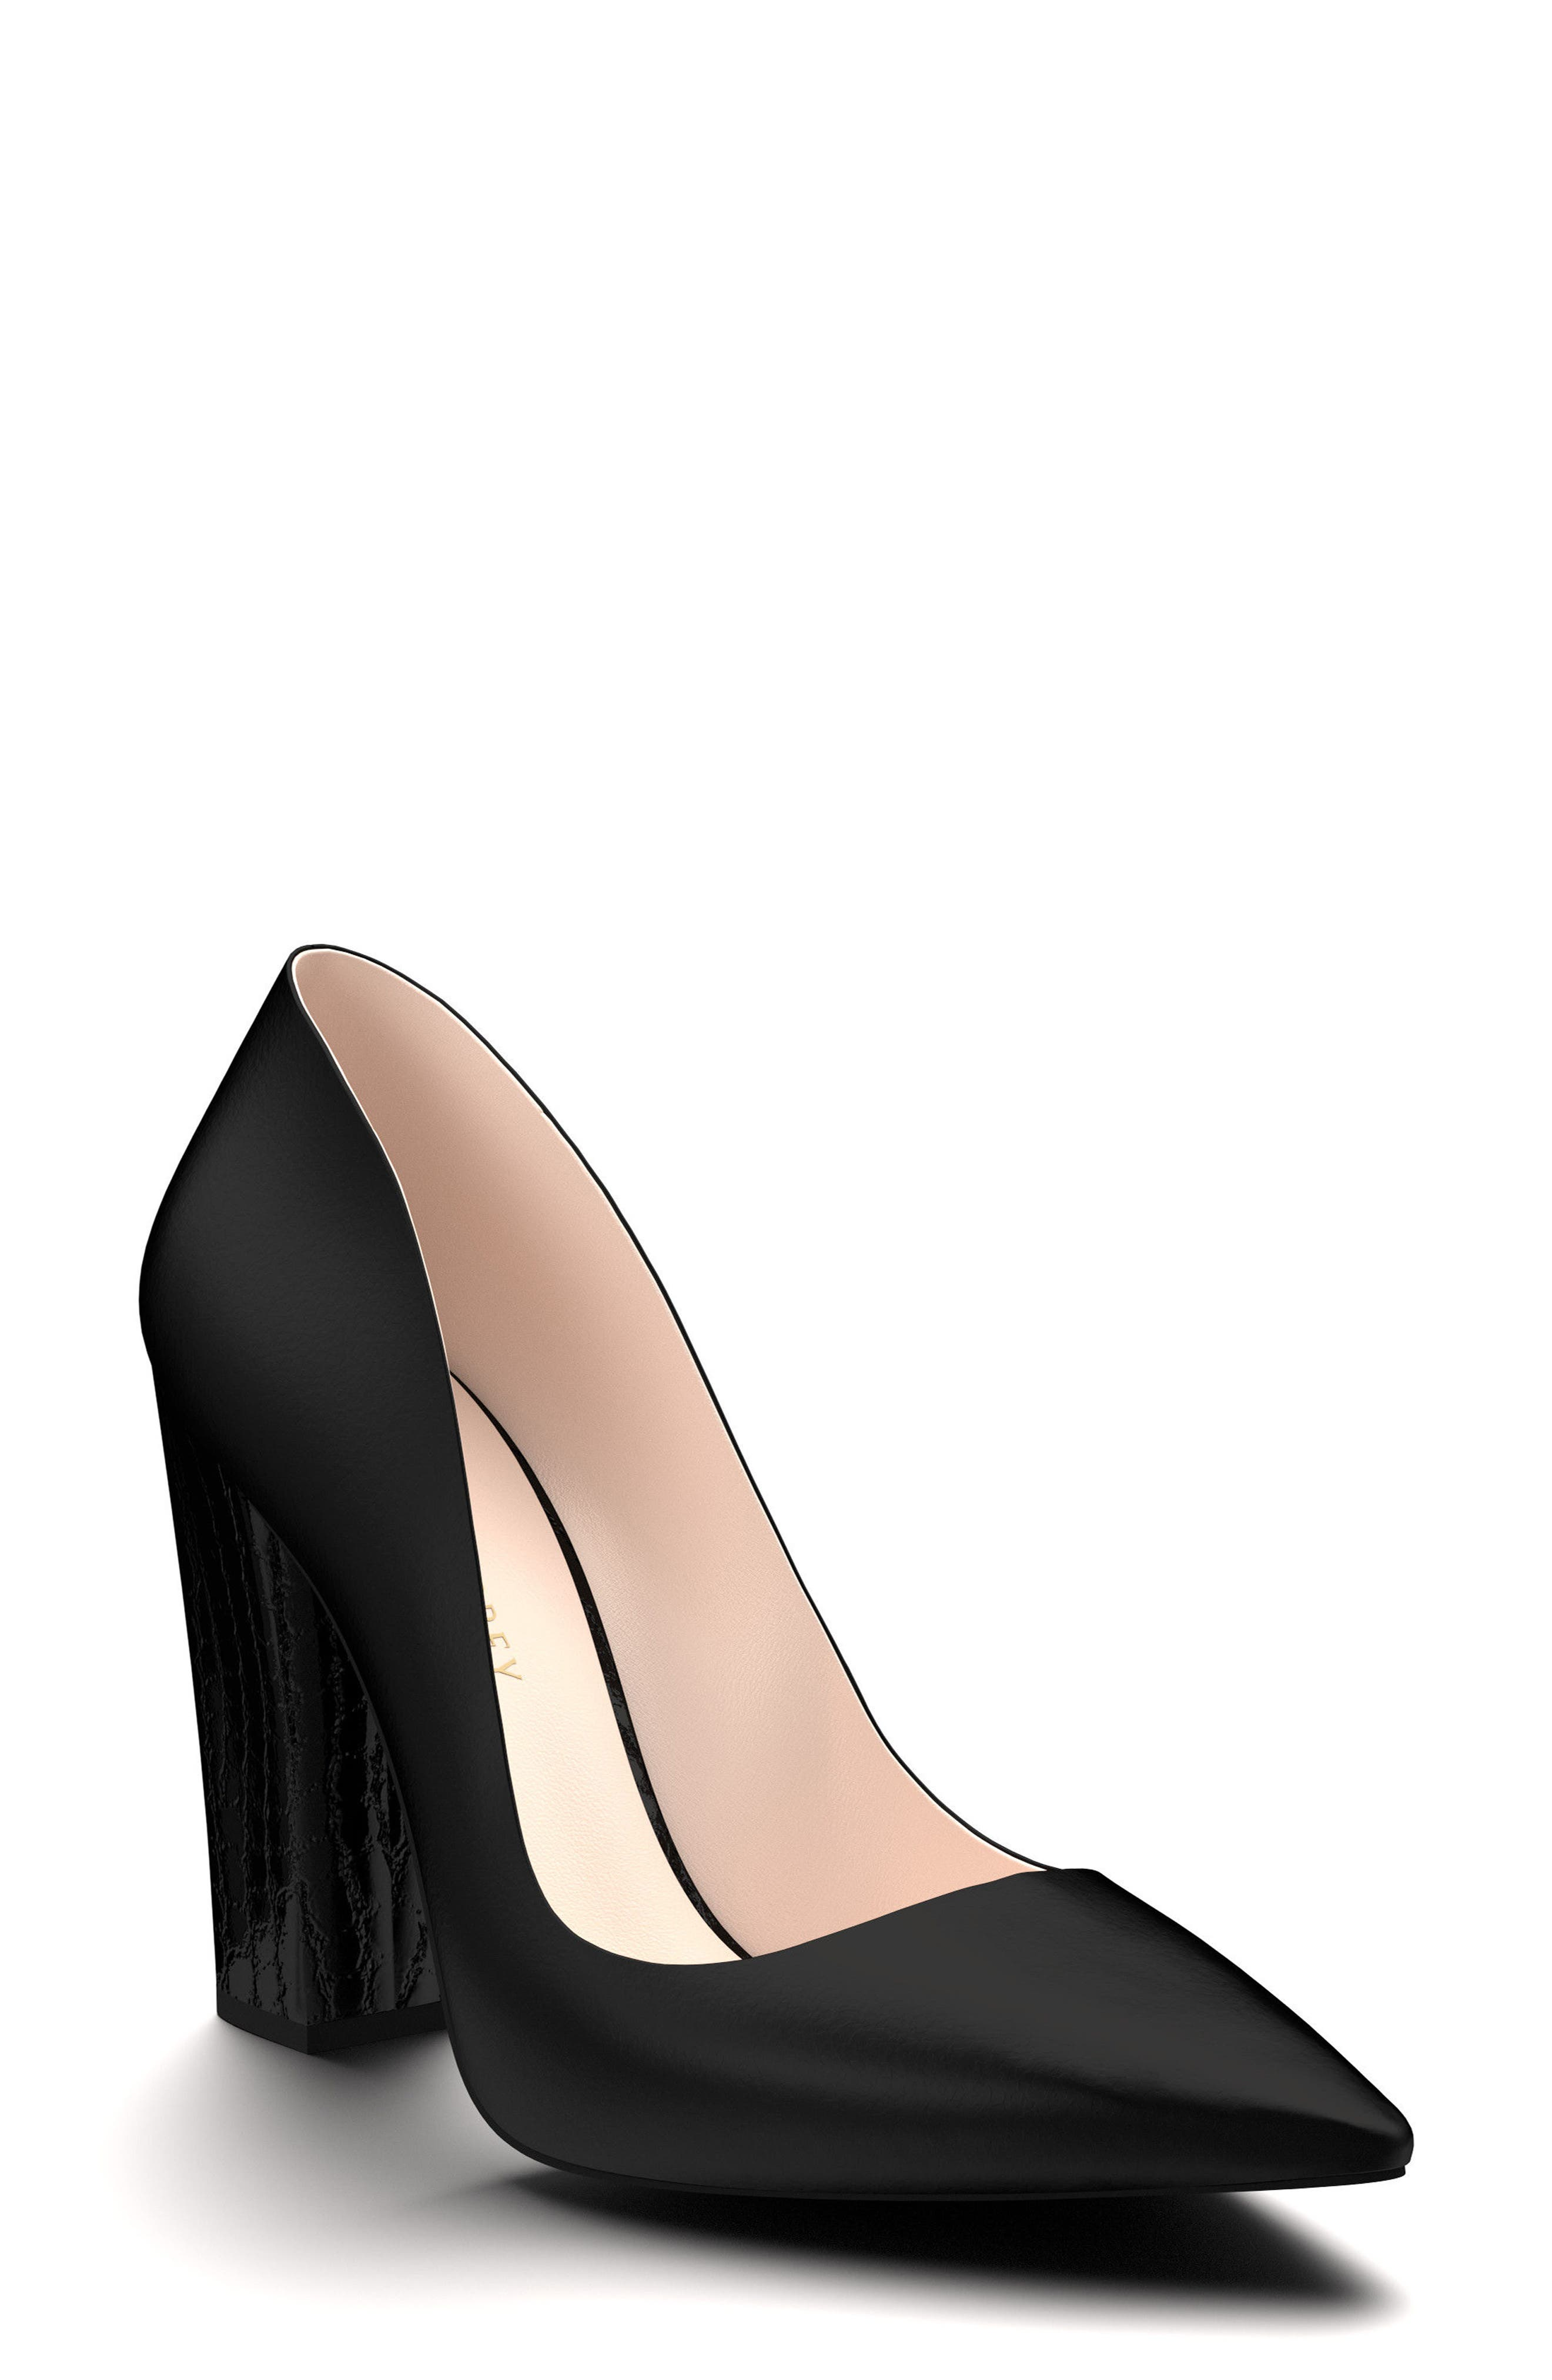 SHOES OF PREY Pointy Toe Pump, Main, color, 001